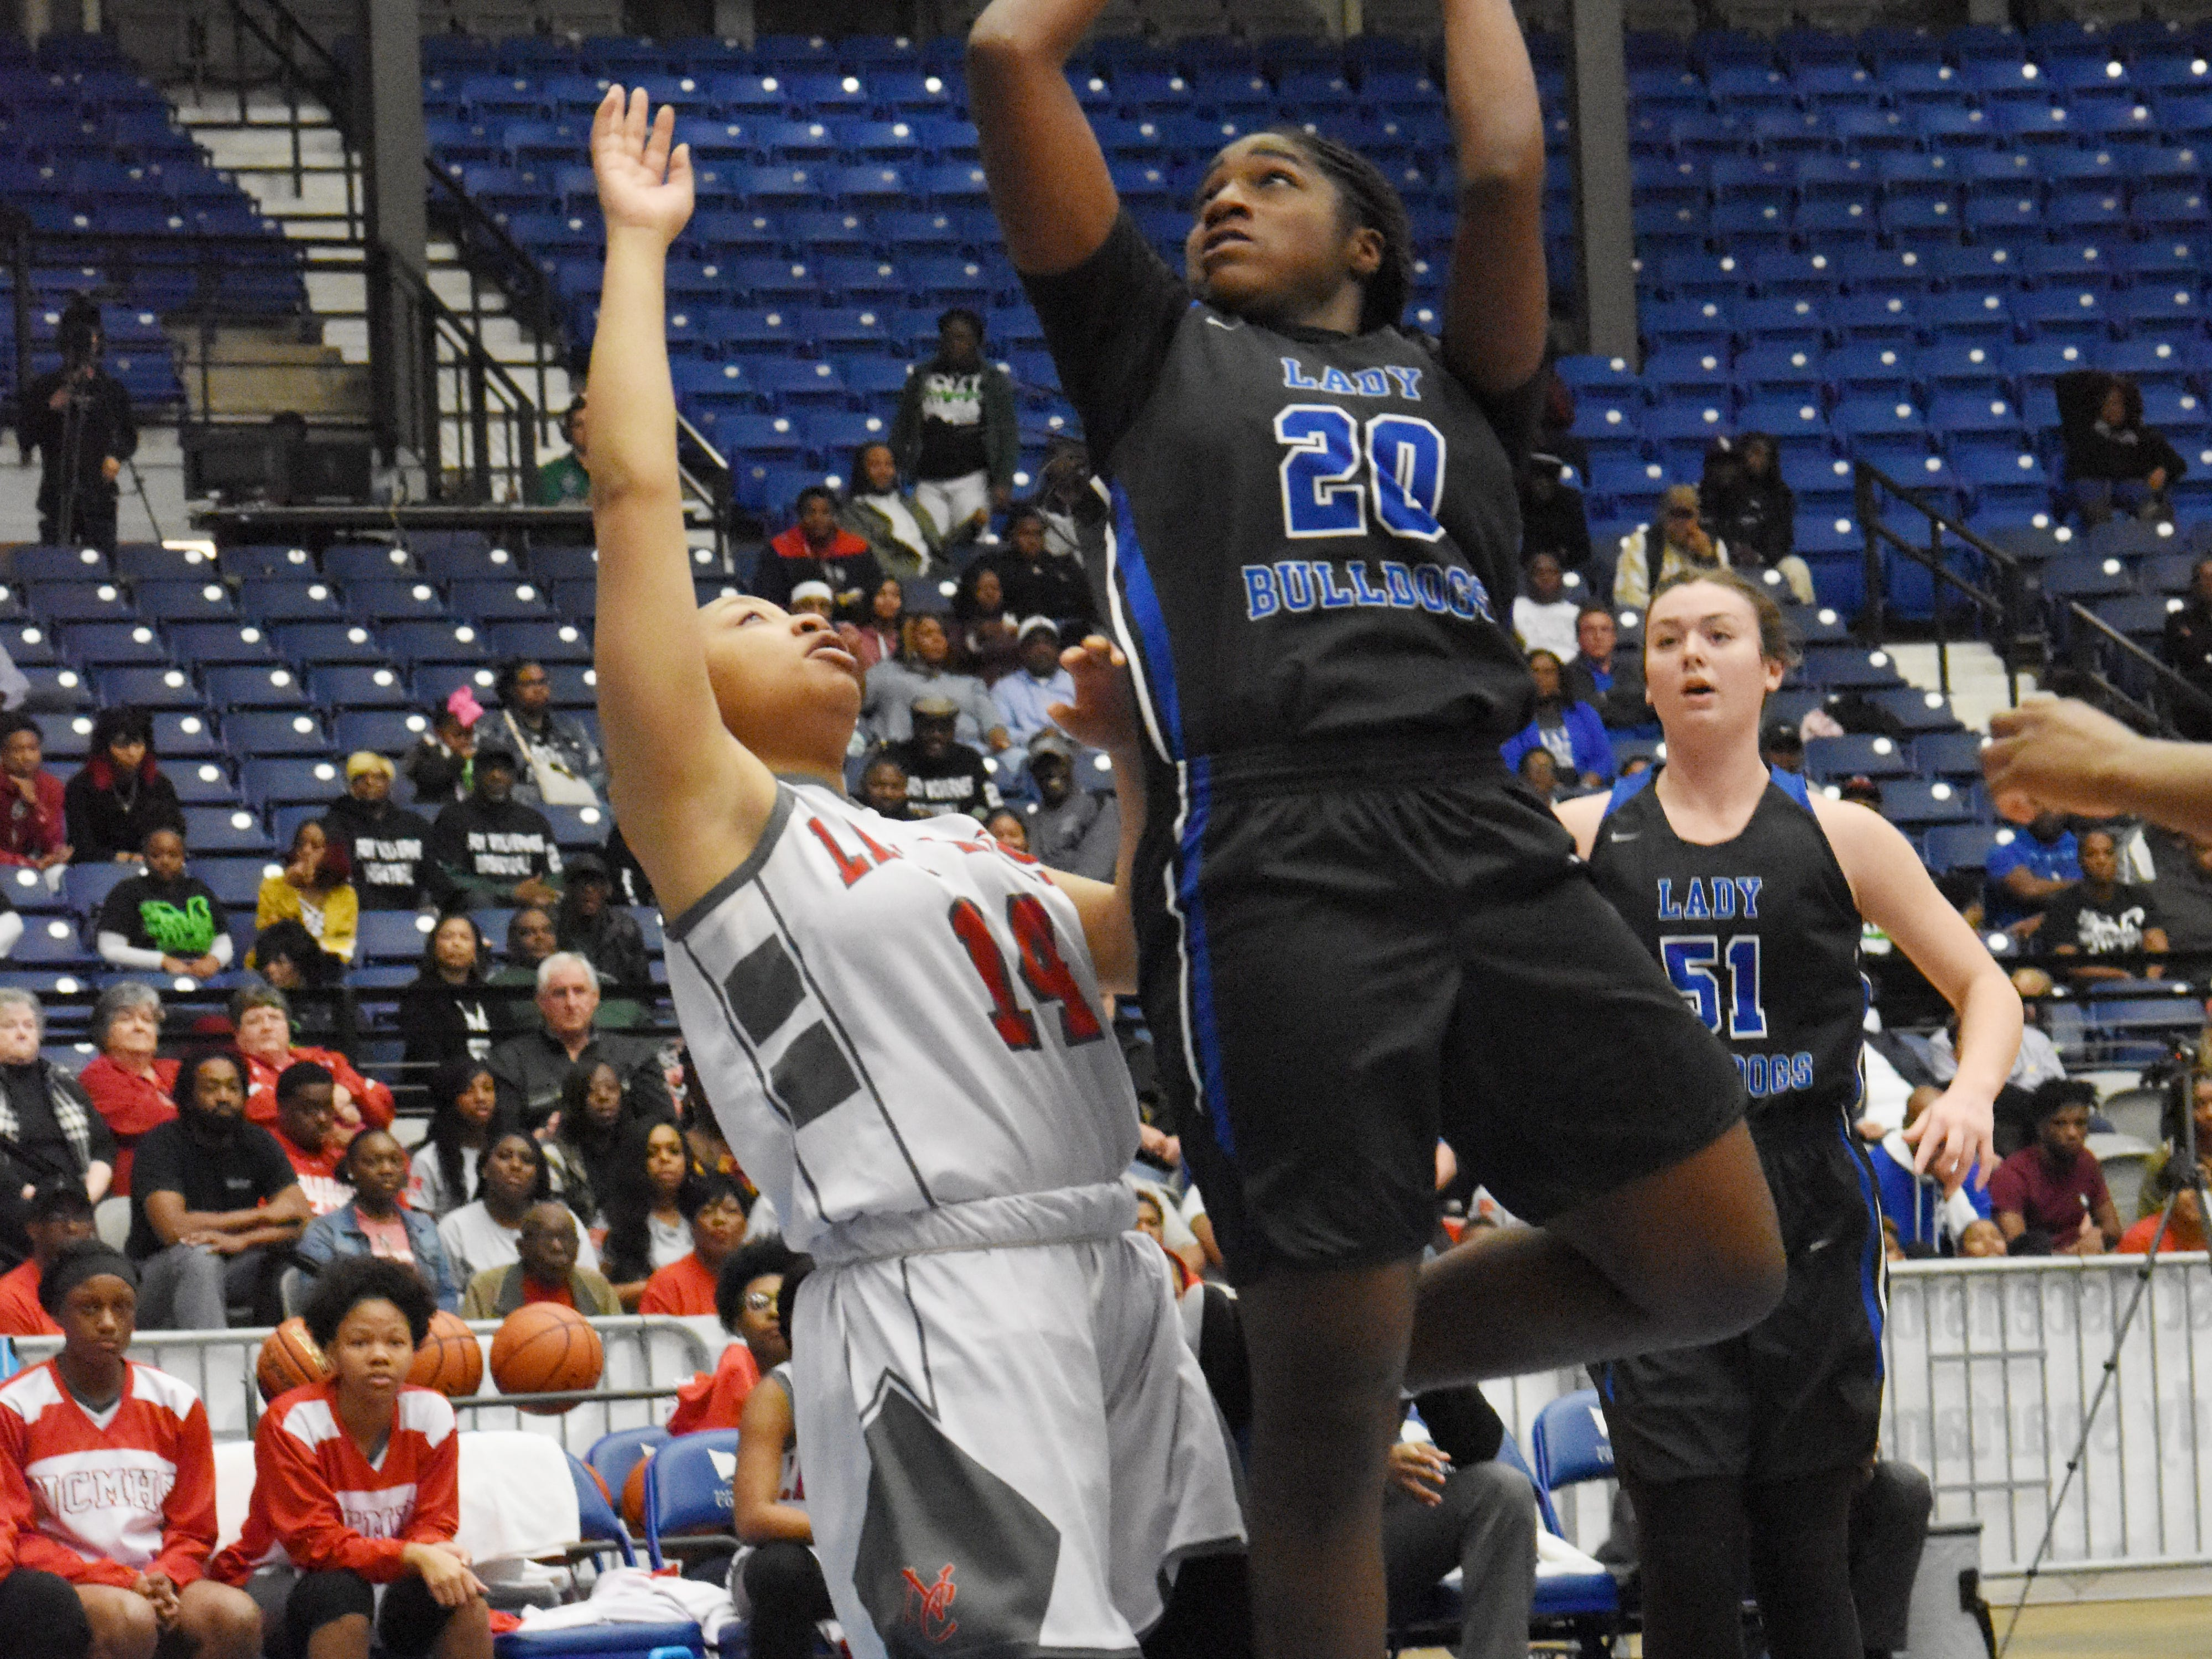 Red River's Ma'Kaila Lewis (20, right) goes for two against North Caddo's TaShala Vinson (14, left)  in the Class 2A semifinal game of the 2019 Allstate Sugar Bowl 2019 Louisiana High School Athletic Association Girl's State Basketball Marsh Madness held Thursday, Feb. 28, 2019 at the Rapides Parish Coliseum in Alexandria.